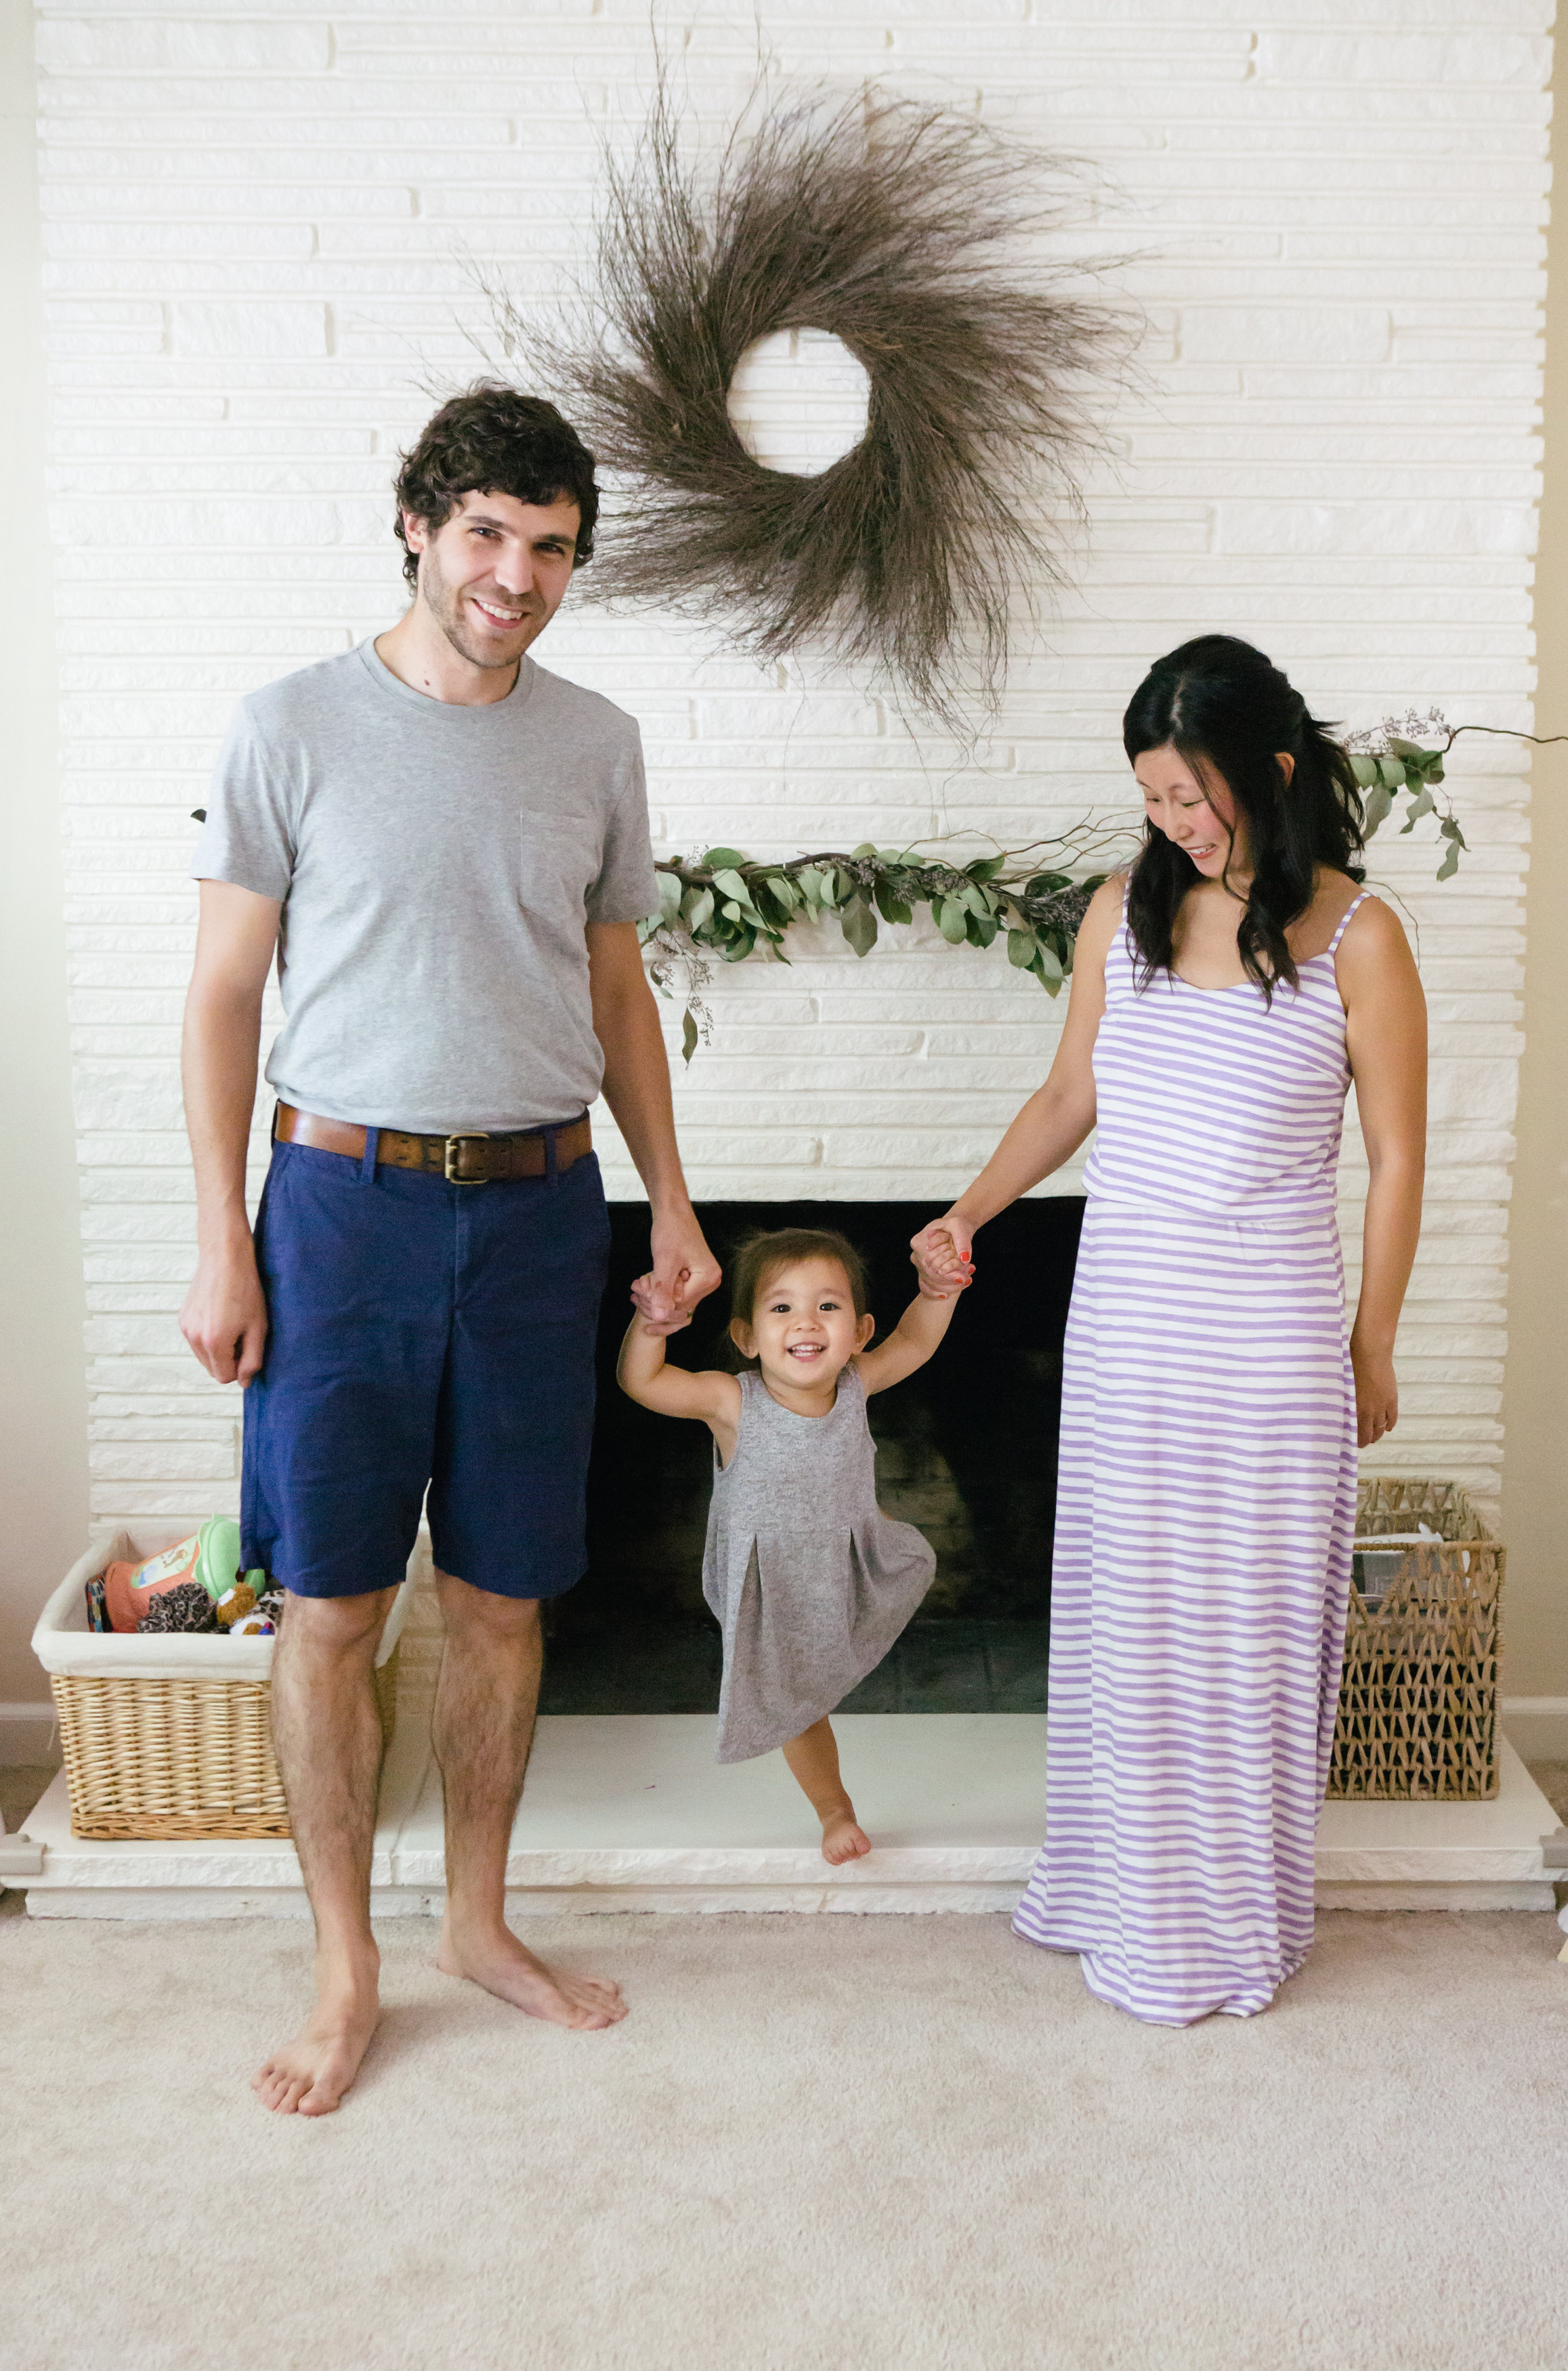 View More: http://carissagphotography.pass.us/gammon-family-july-2014